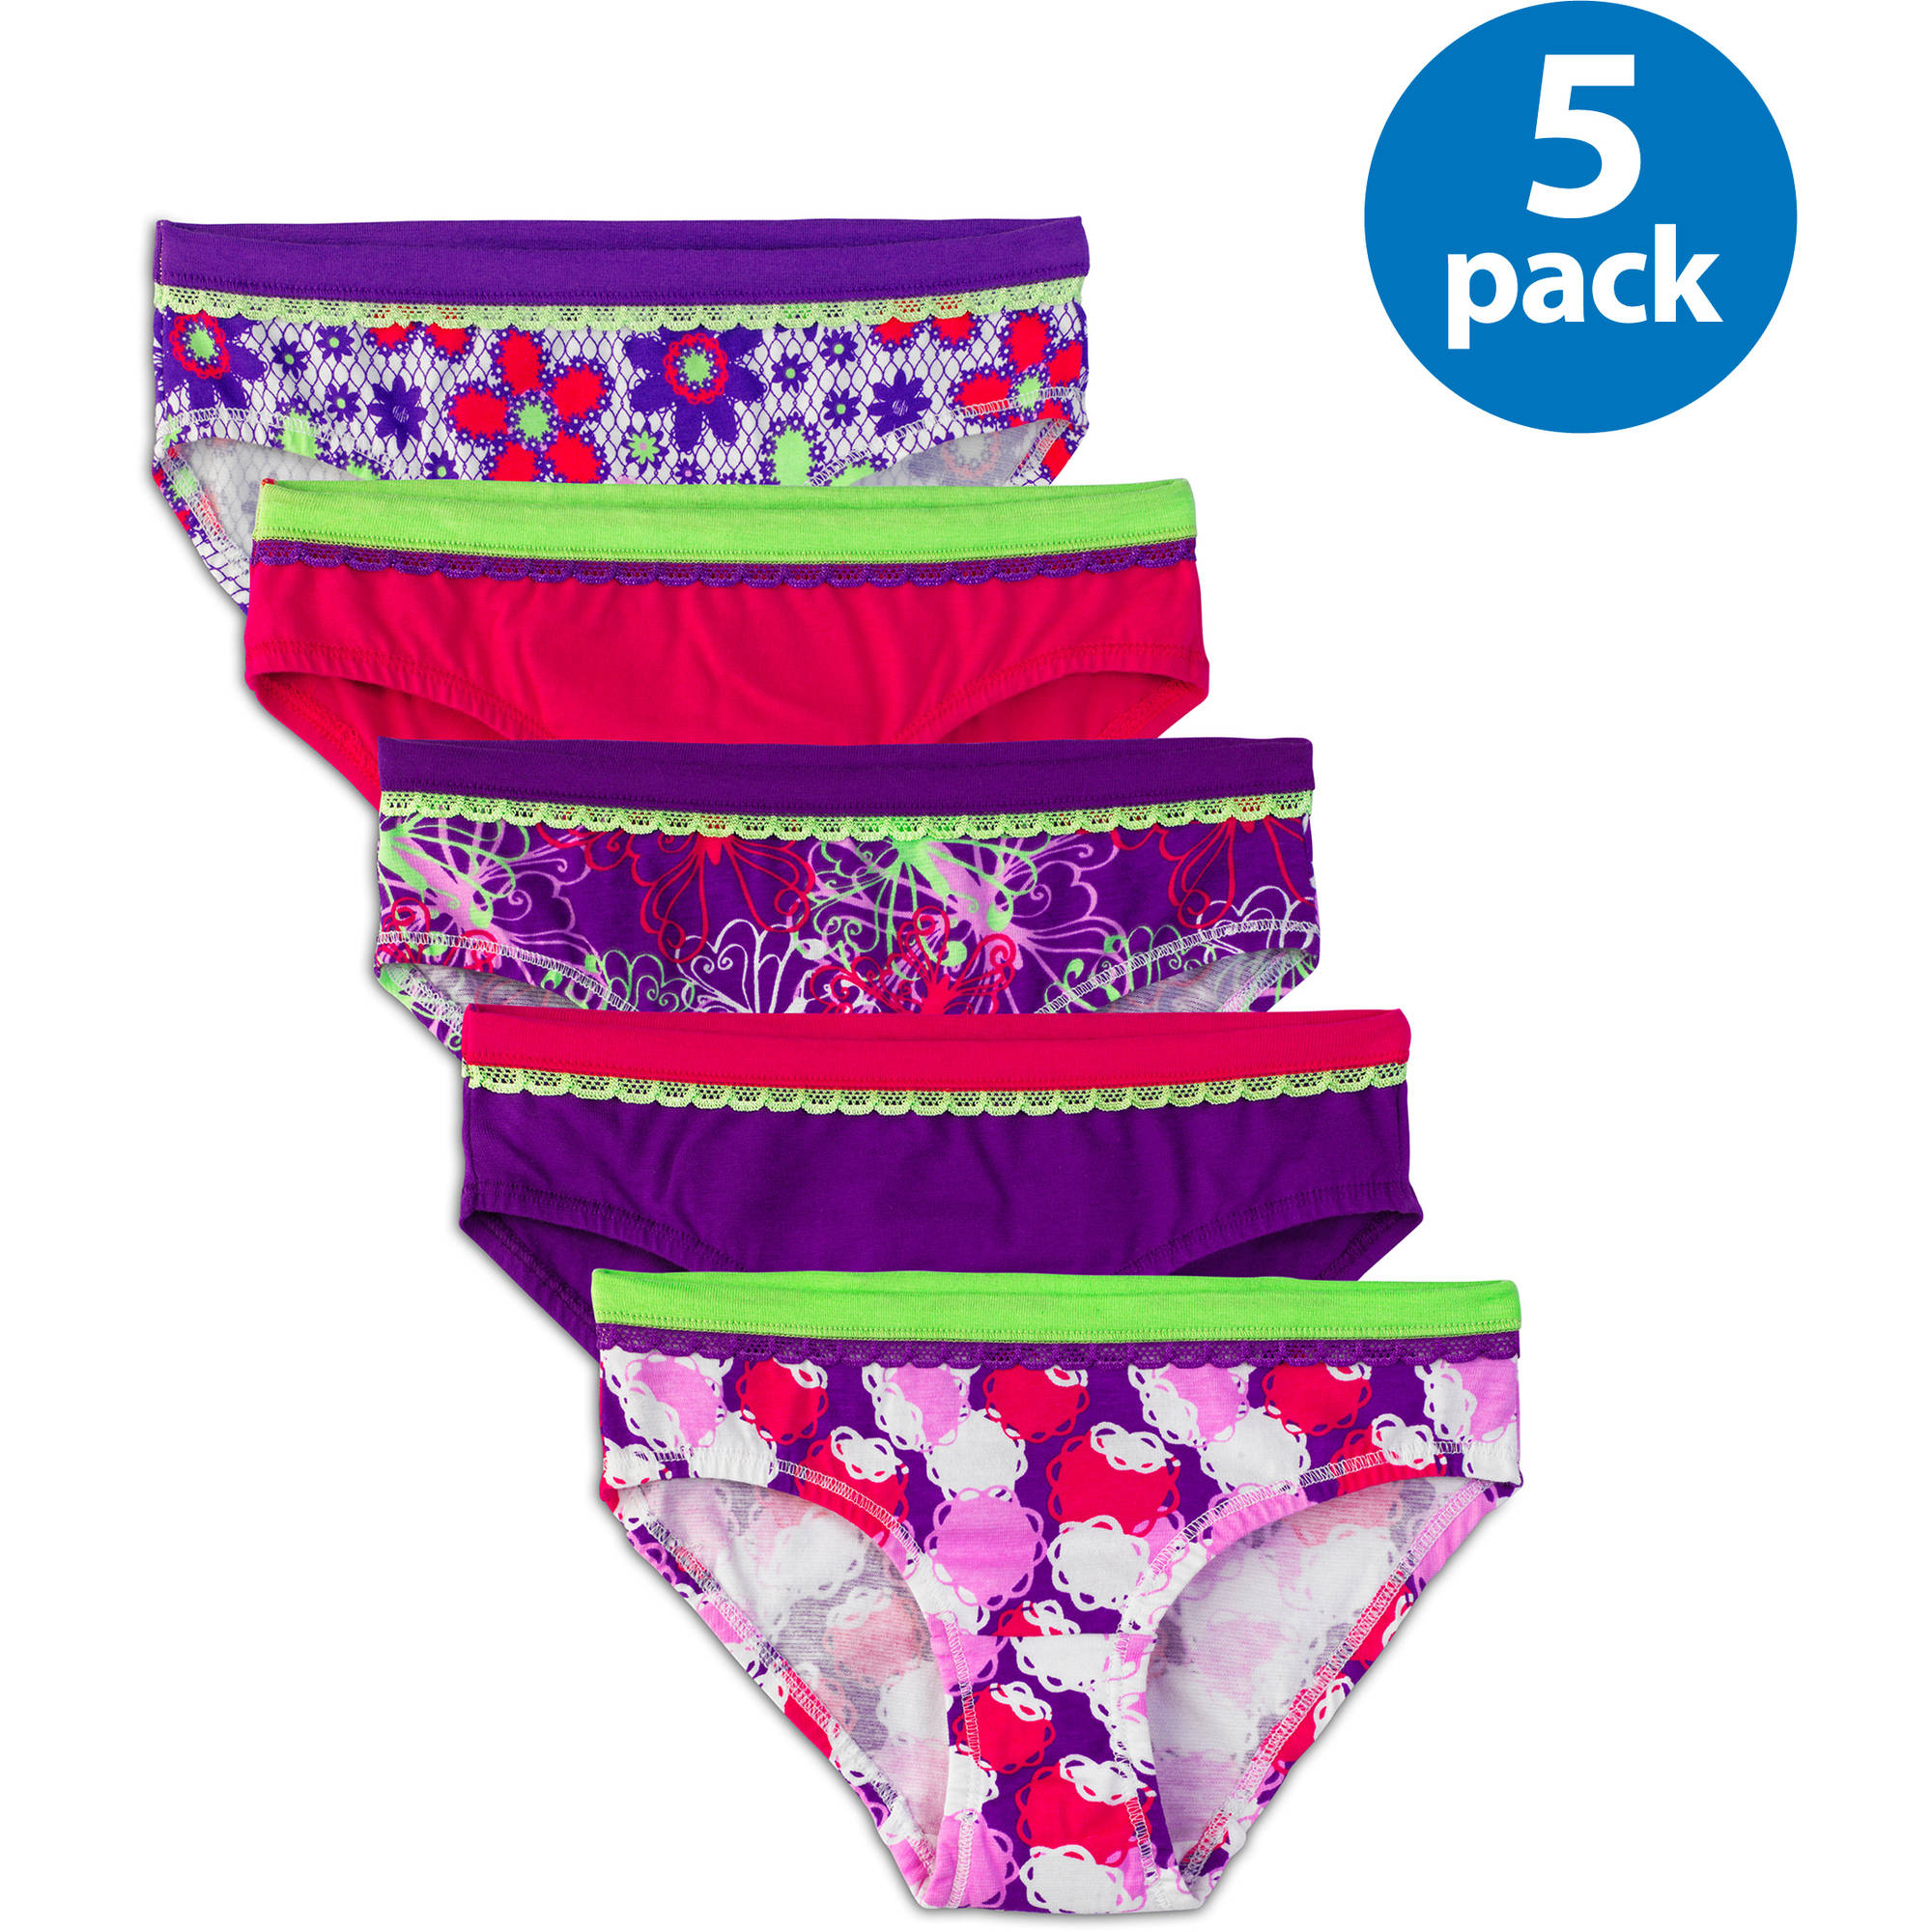 Fruit of the Loom Girls' Cotton Stretch Hipster Panties, 5-Pack